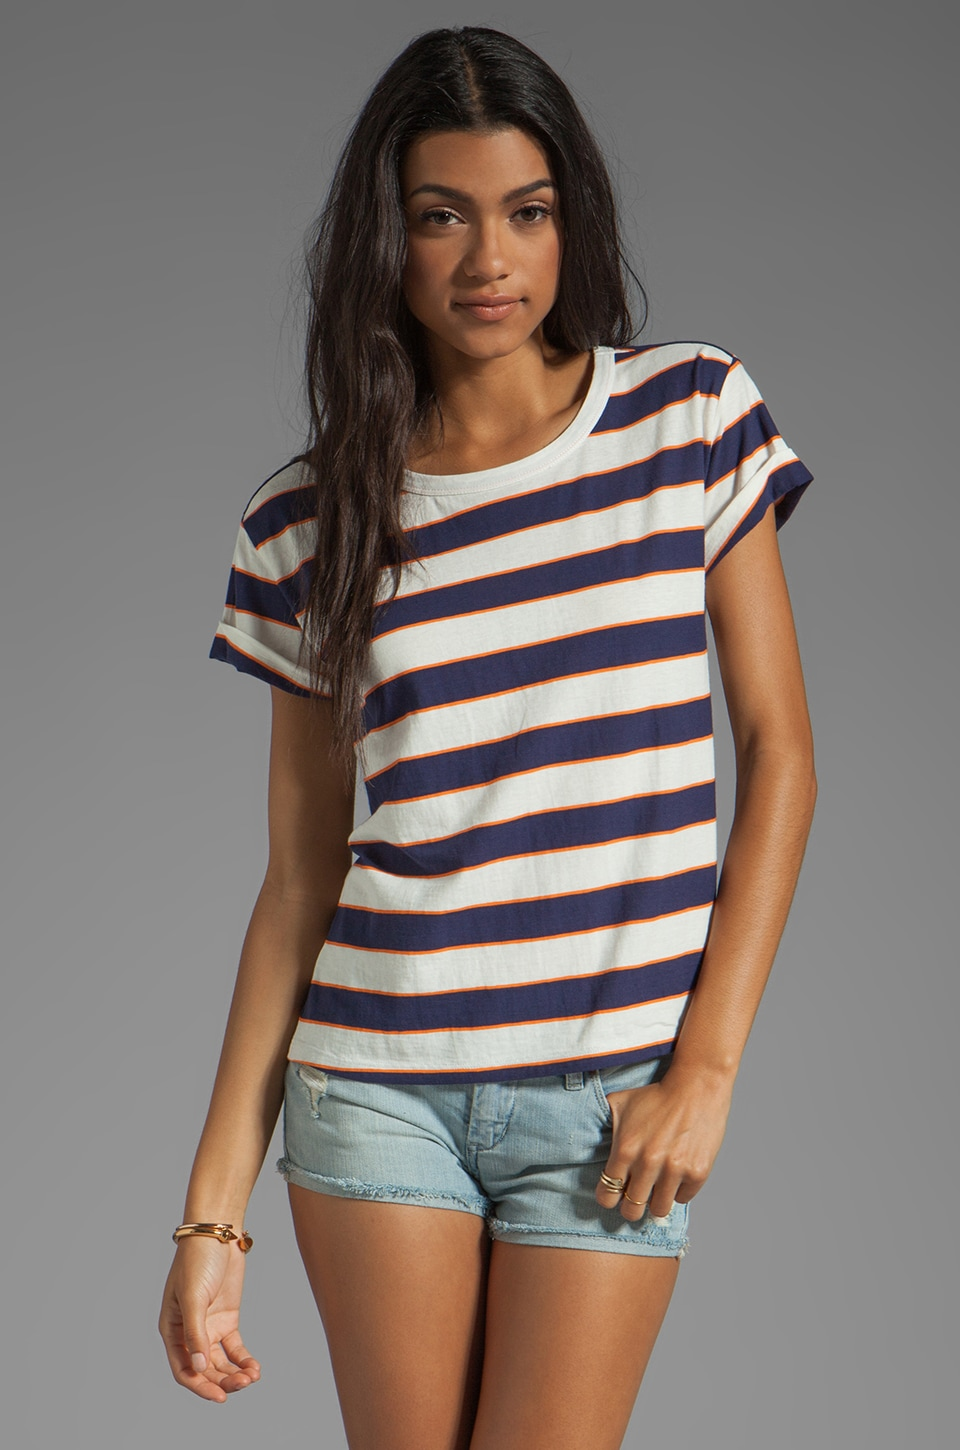 Joie Layden Stripe Tee in Blue Violet